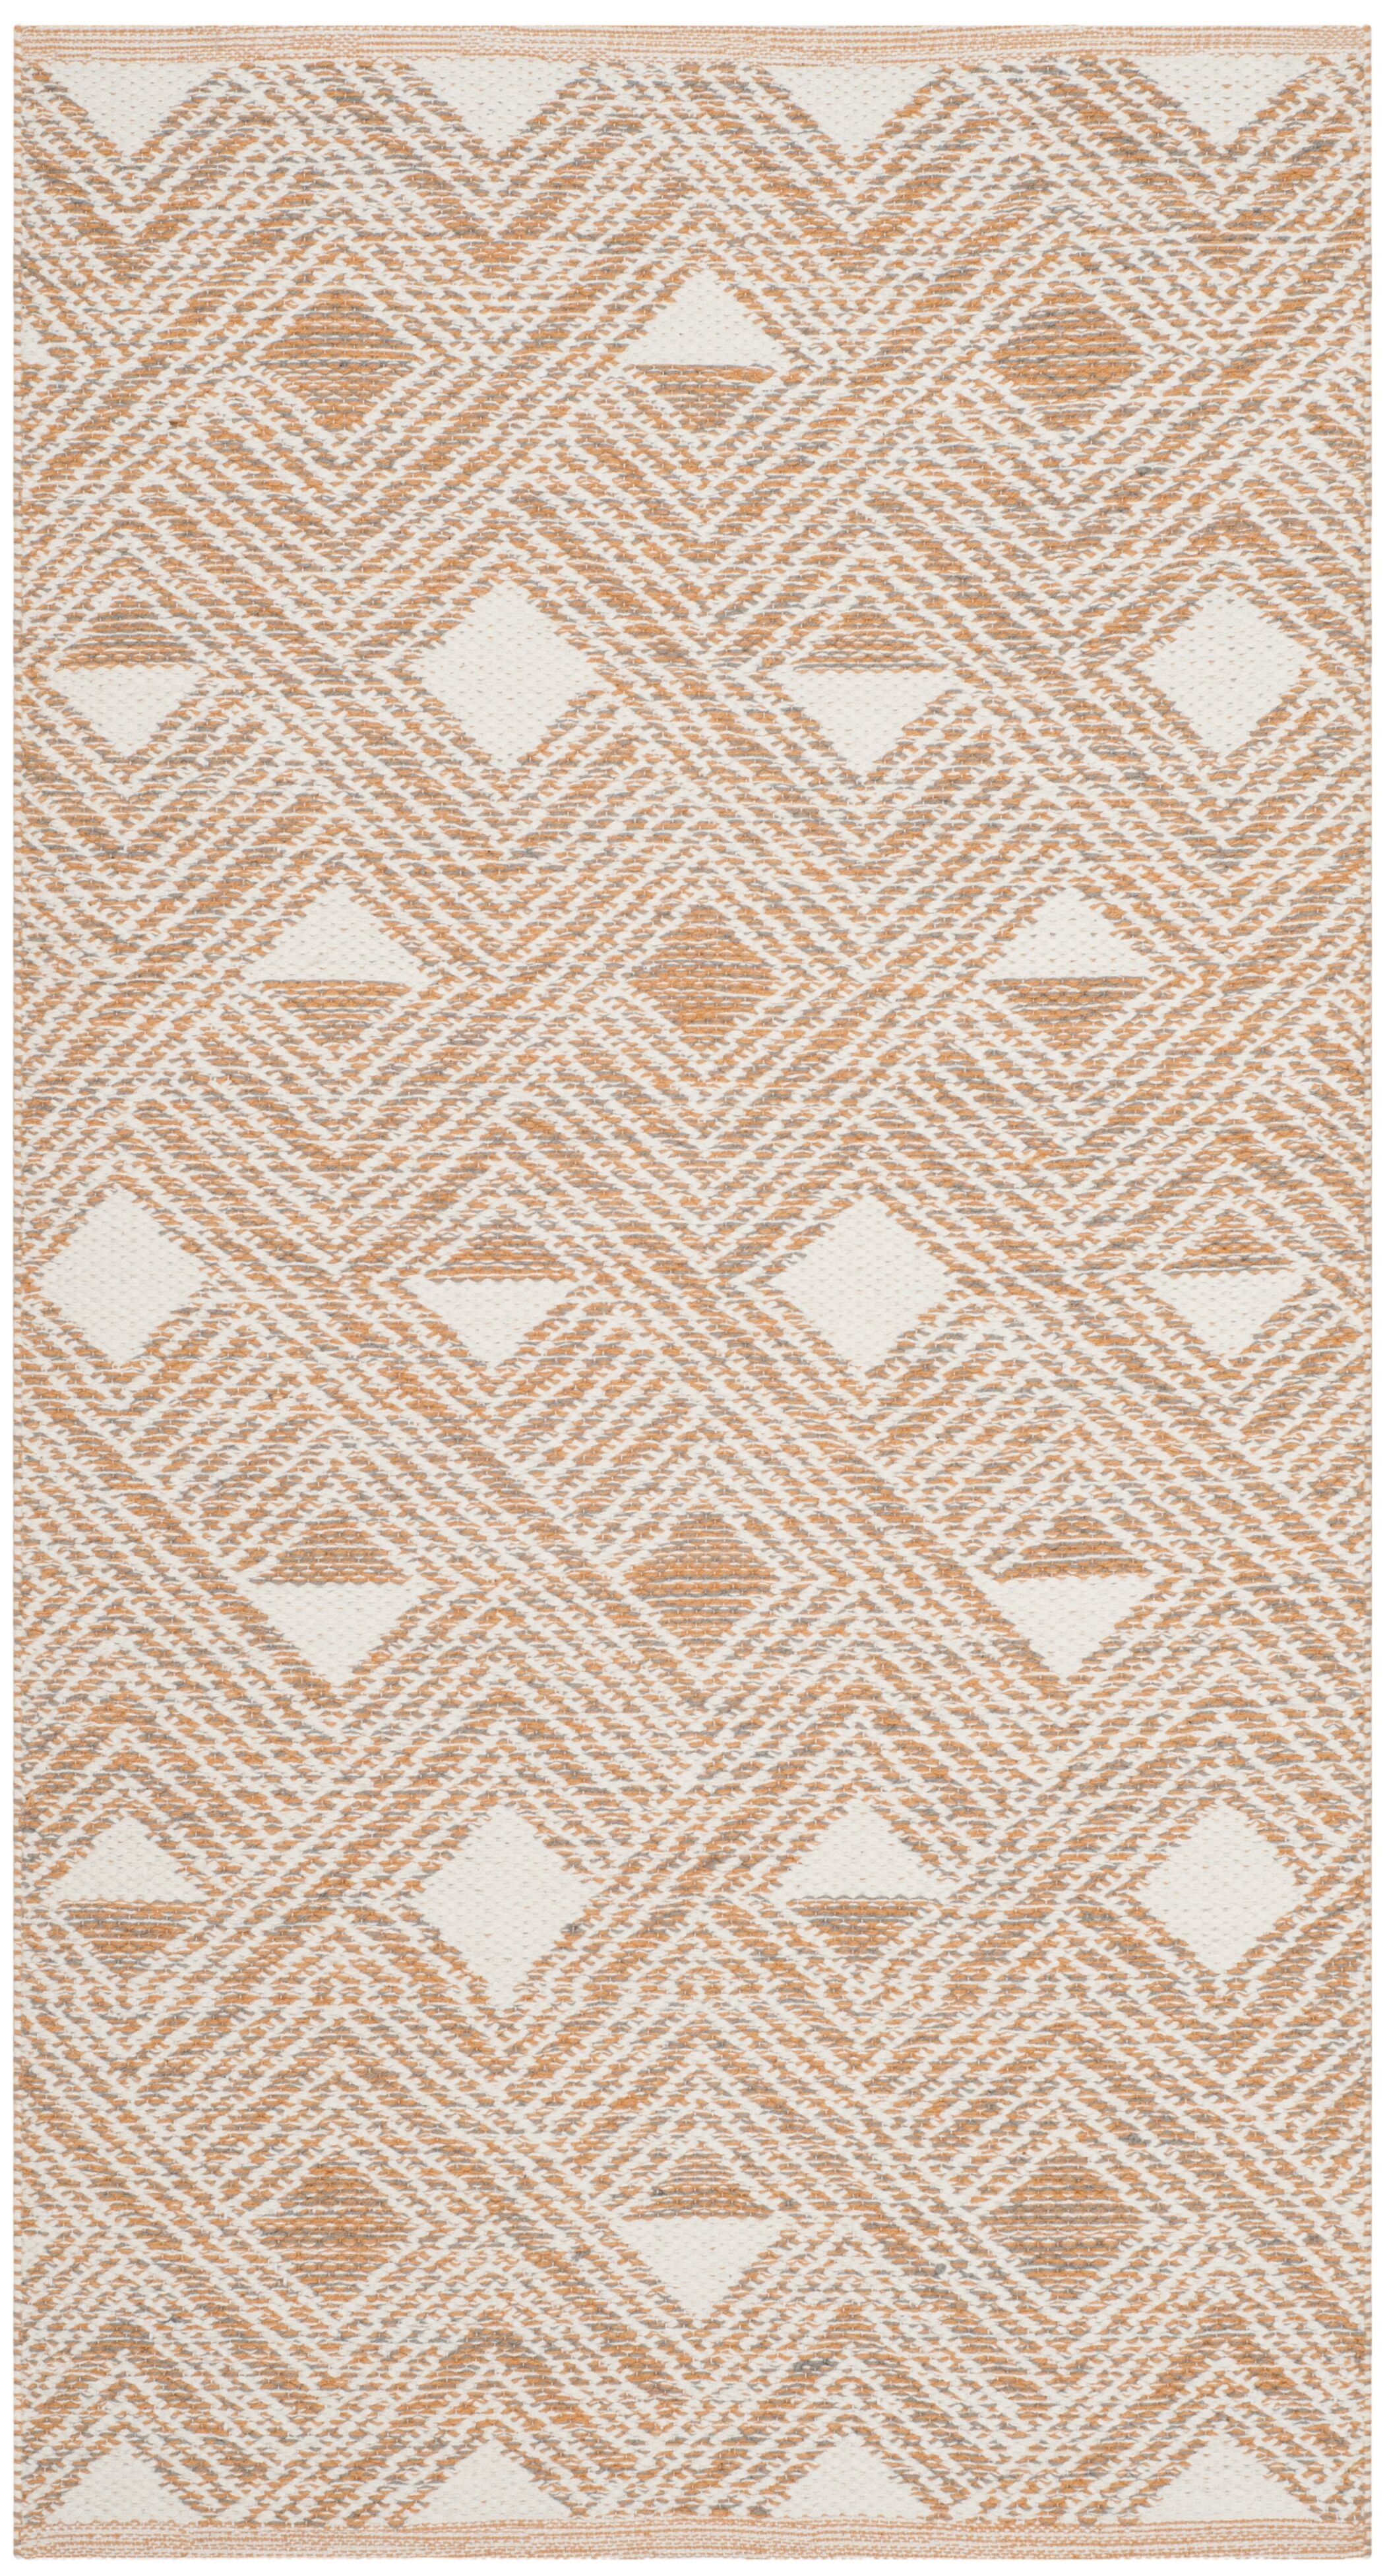 Cloutier Hand-Woven Peach/Ivory Area Rug Rug Size: Rectangle 5' x 8'